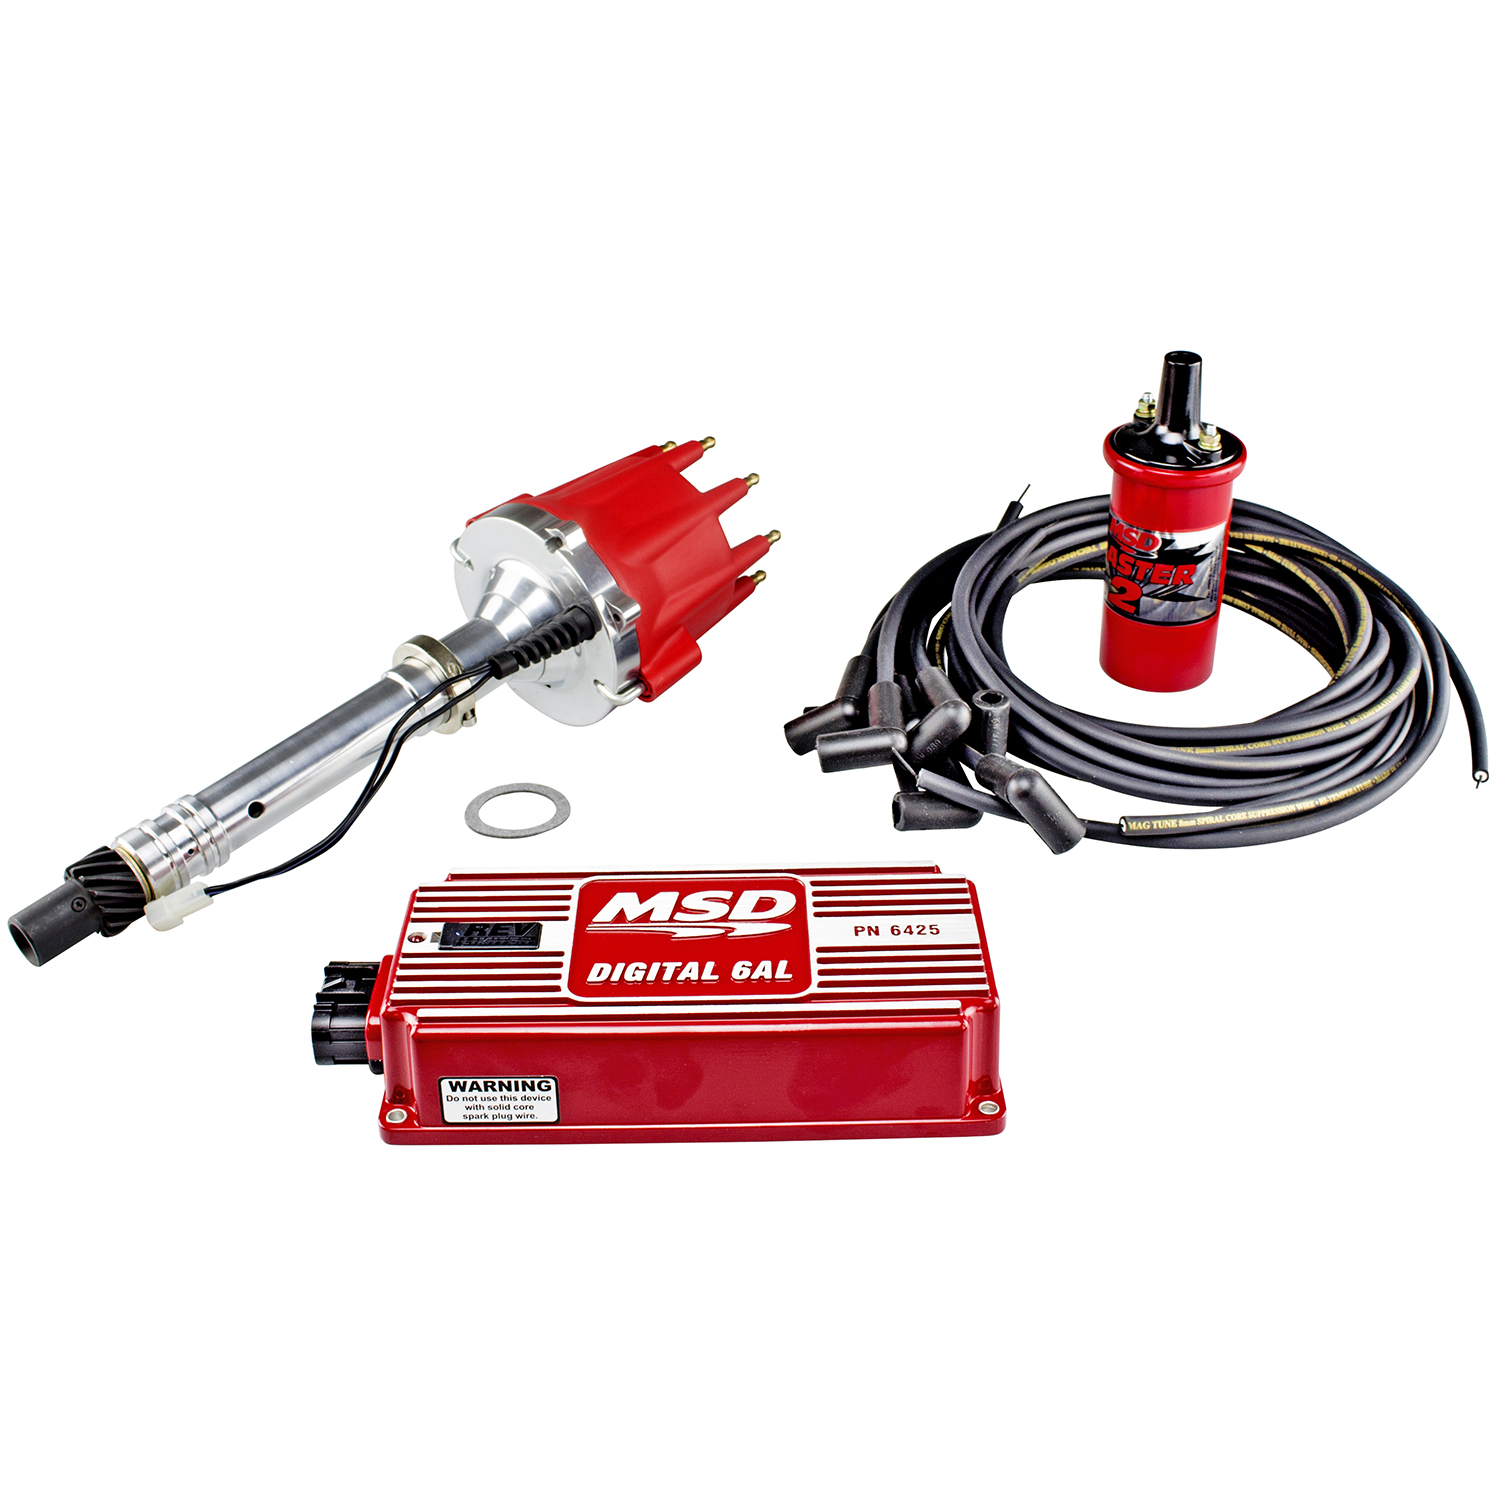 hight resolution of power products billet racing ignition kit chev sb bb w slip collar red or black